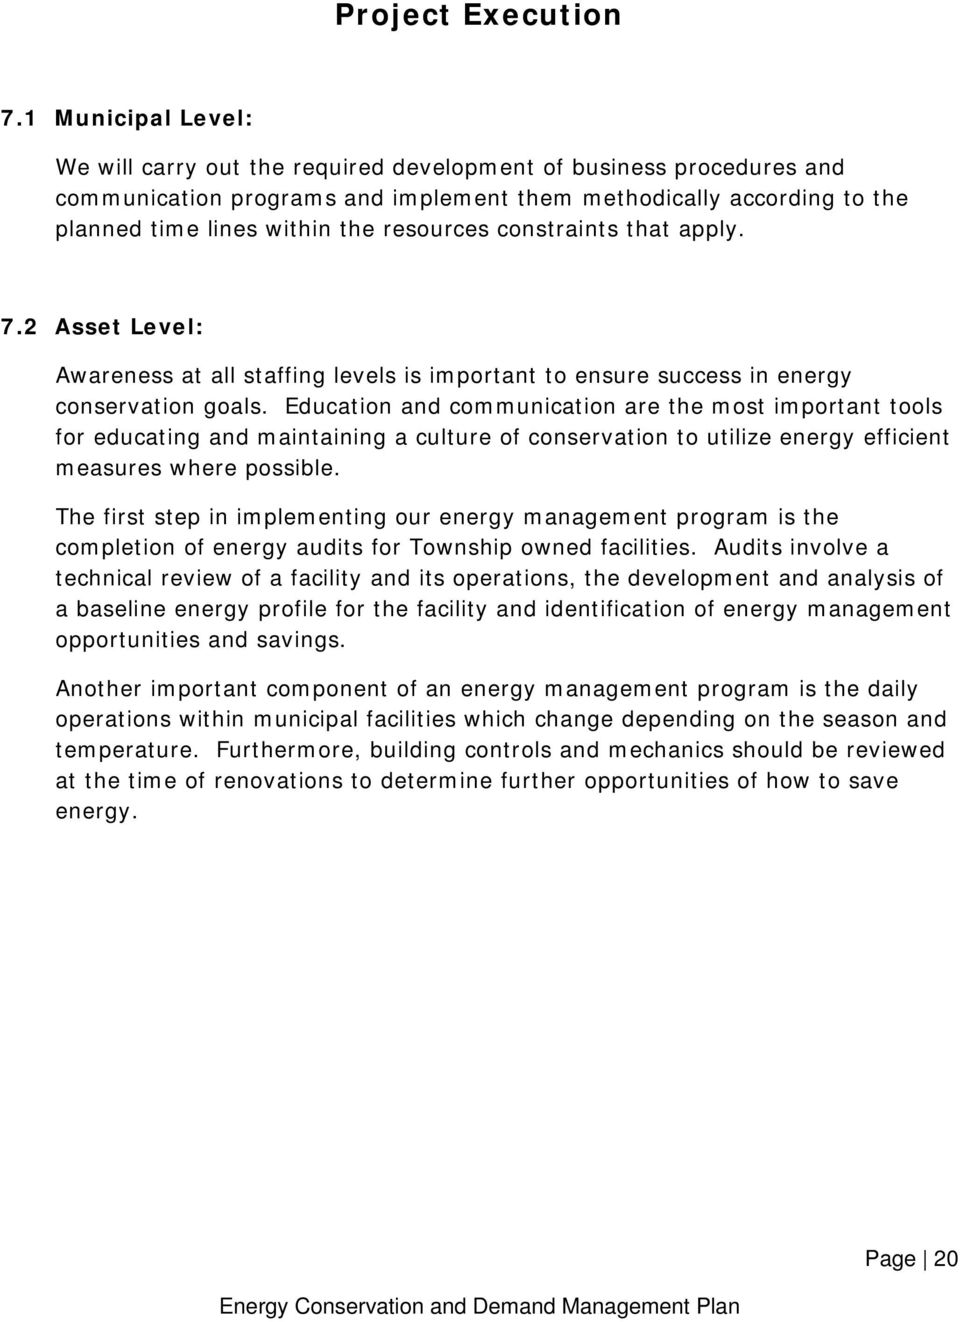 resources constraints that apply. 7.2 Asset Level: Awareness at all staffing levels is important to ensure success in energy conservation goals.